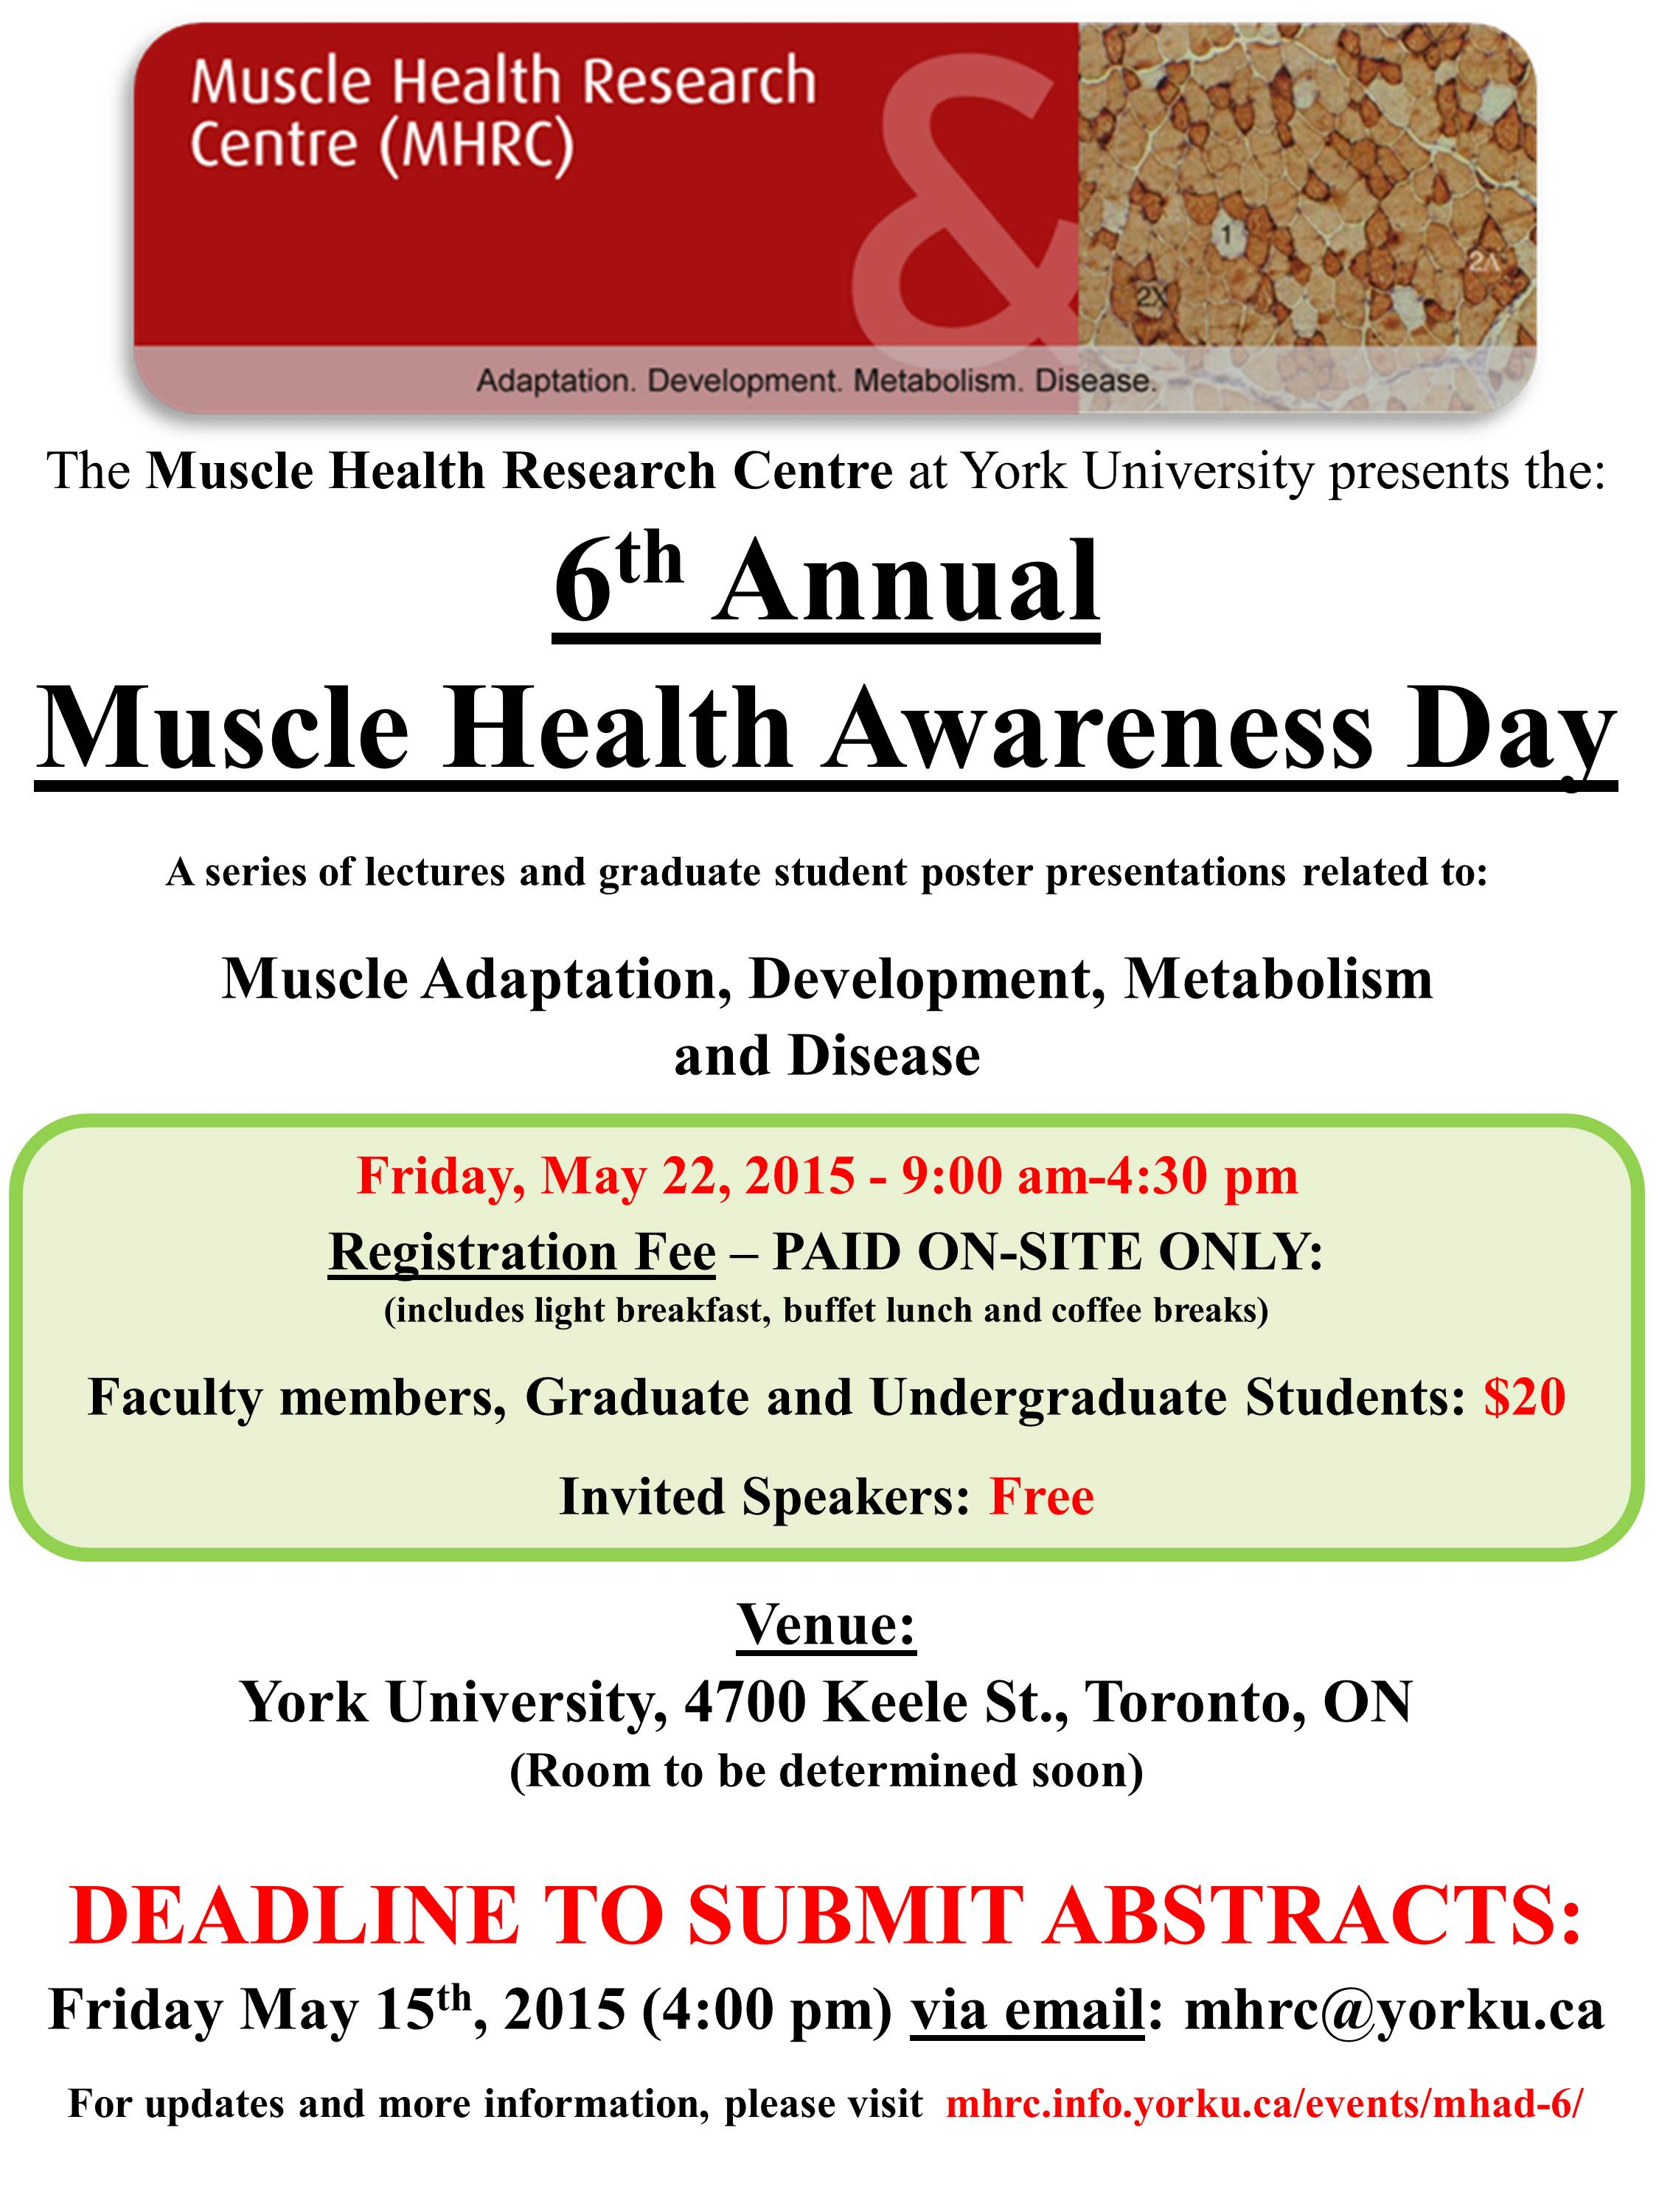 6th Annual Muscle Health Awareness Day @ York University